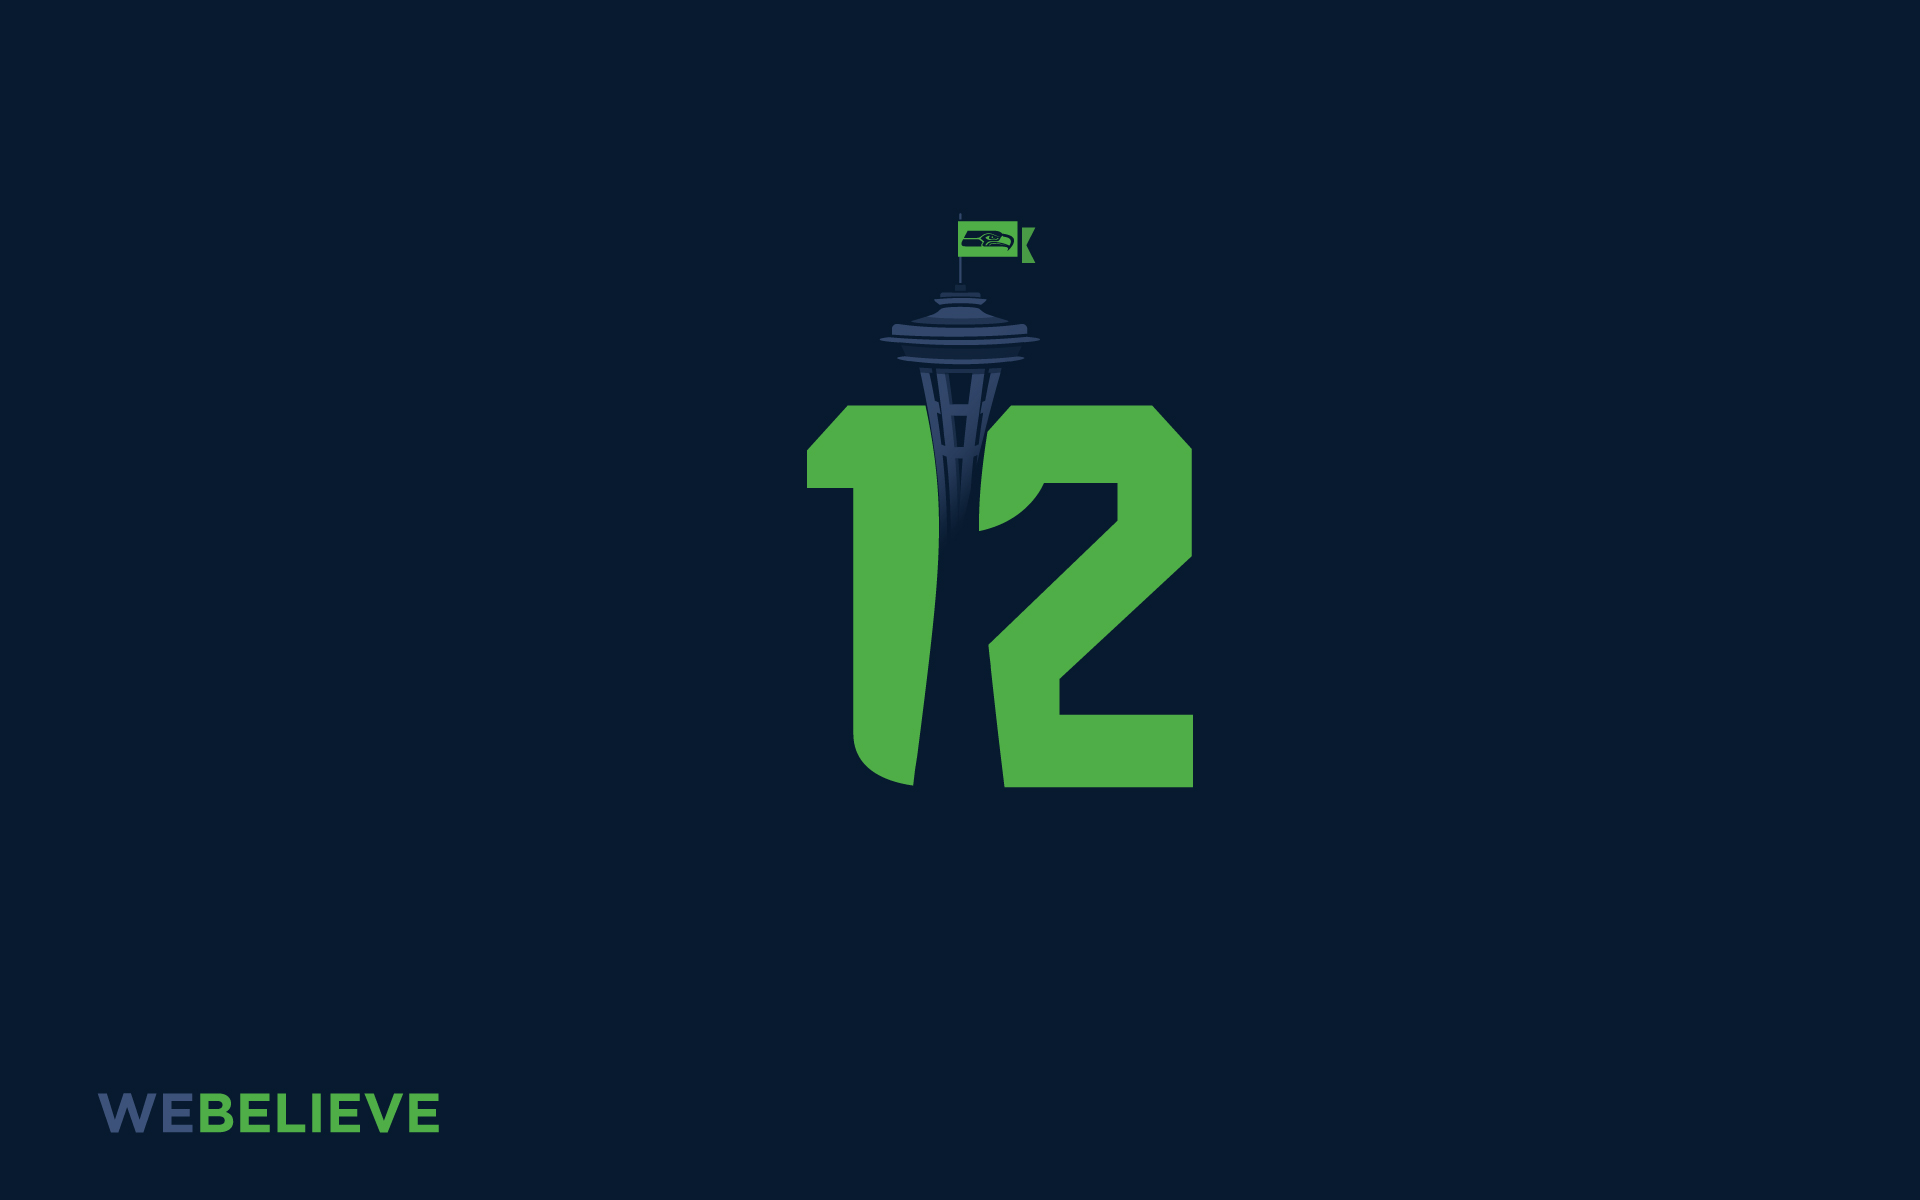 seattle seahawks iphone wallpaper collections